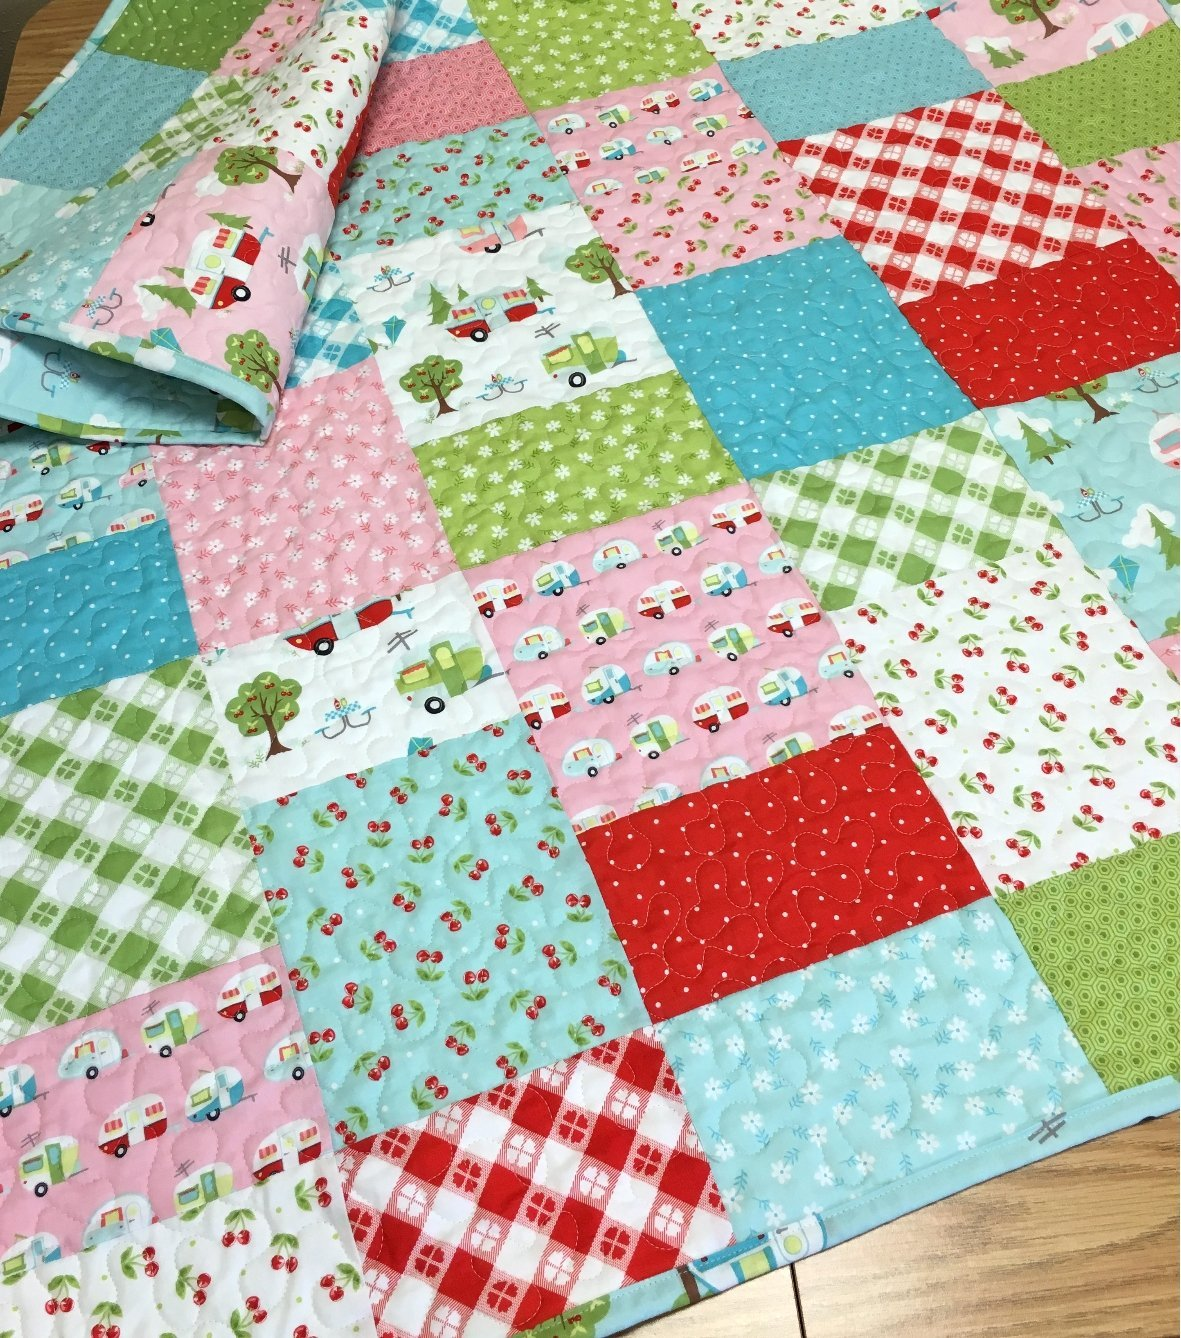 Baby Girl Quilt Campers Picnic Glamper-Licious Nursery Crib Bedding